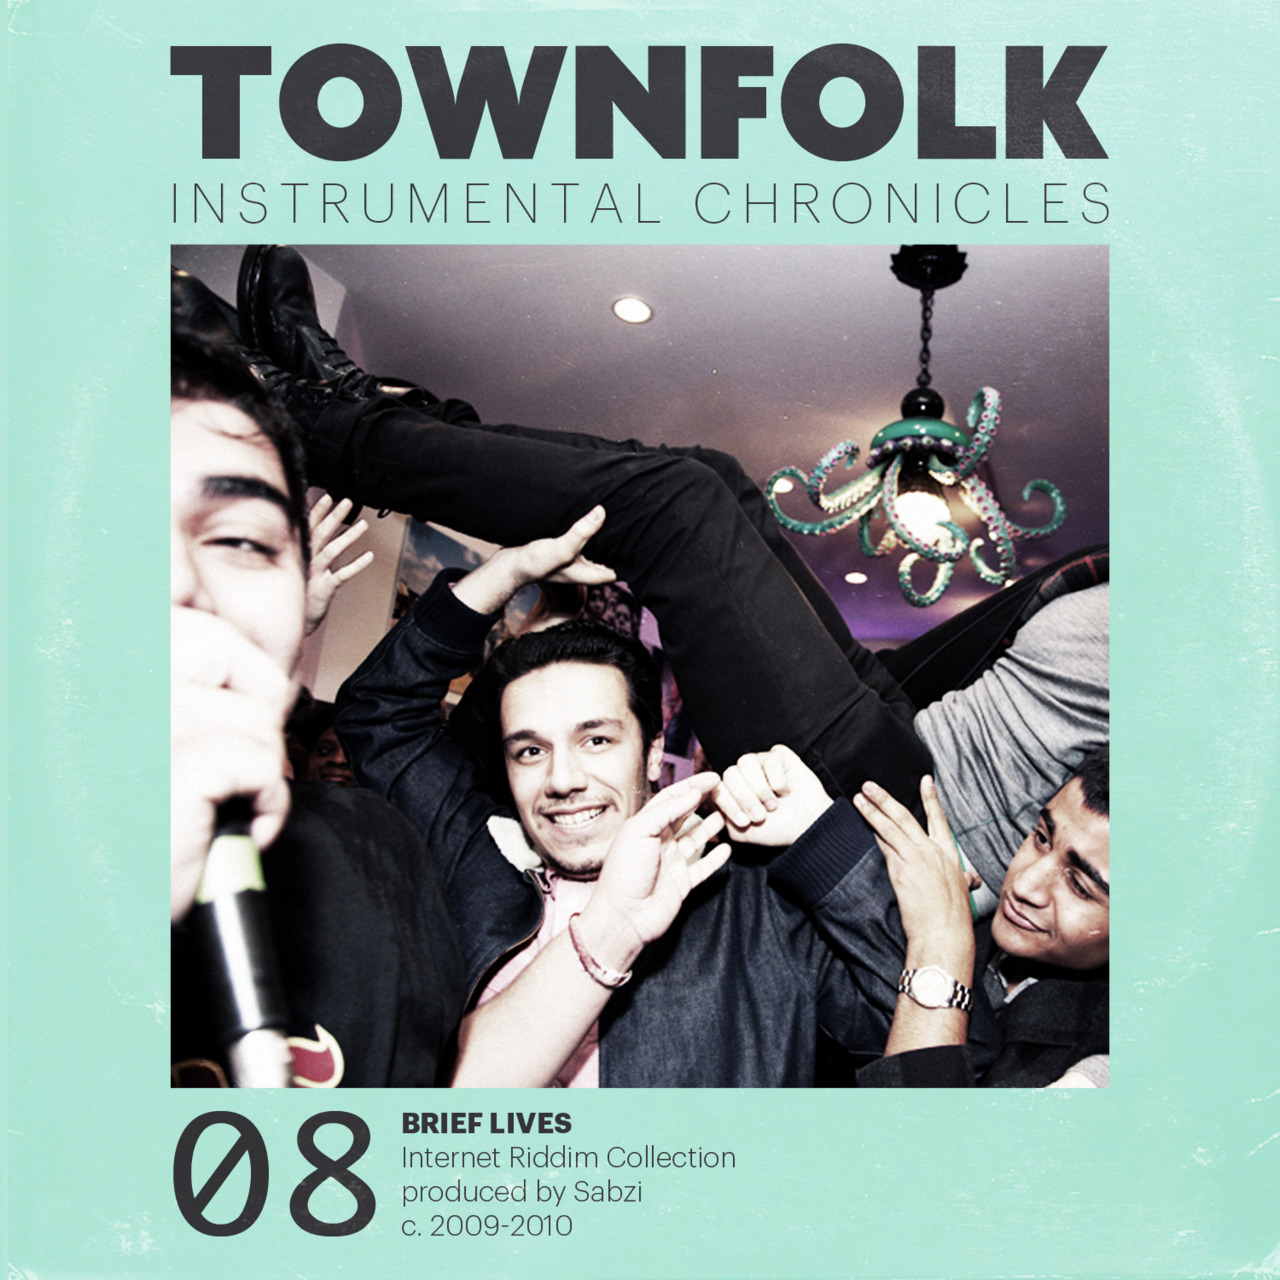 TOWNFOLK INSTRO CHRONICZ NUMERO OCHO.    between 2009-2010 I produced 13 tracks for various artists and one clothing brand: Blue Scholars, Macklemore, Grynch, Das Racist, Fences, Bambu, Rocky Rivera, Burkman Bros. all but one were released for life on the Internet.    DOWNLOAD